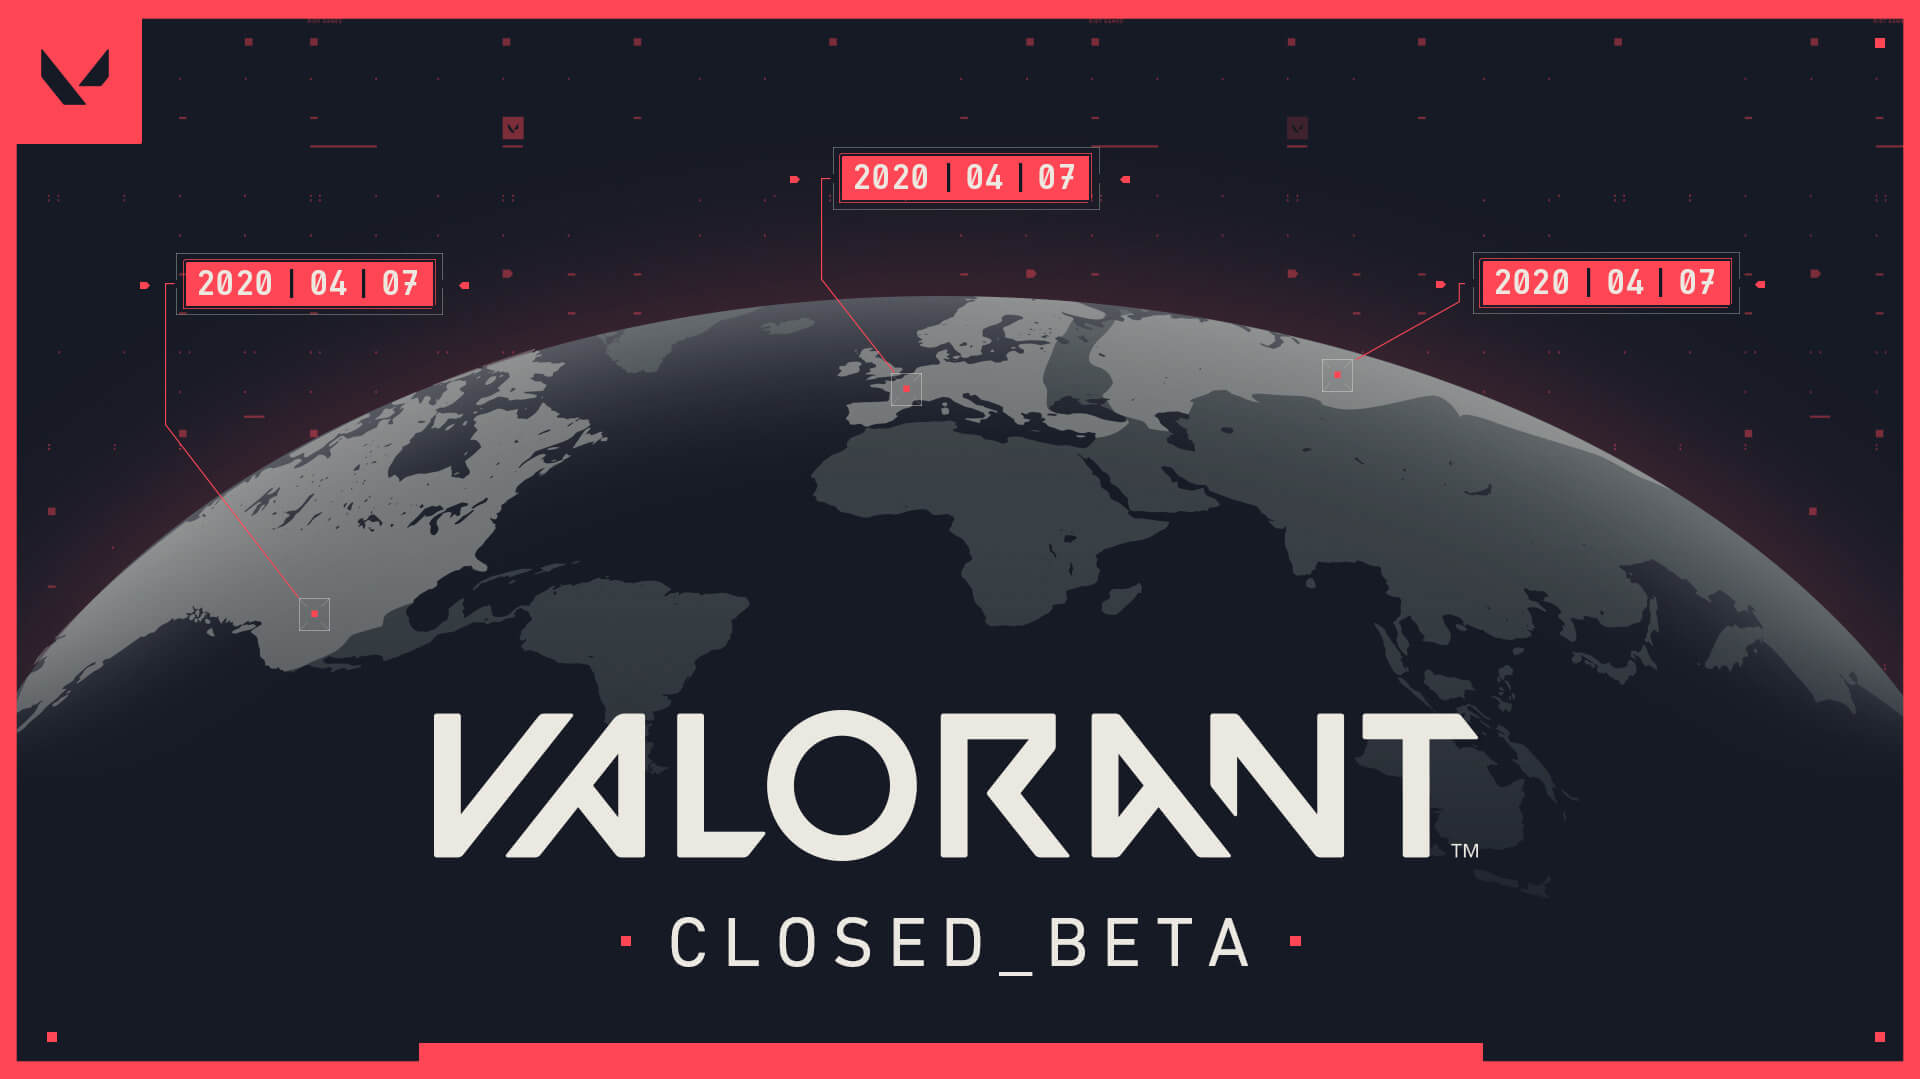 Valorant_Beta_Announce_1Map_6x9_1920x1080-in-article-image